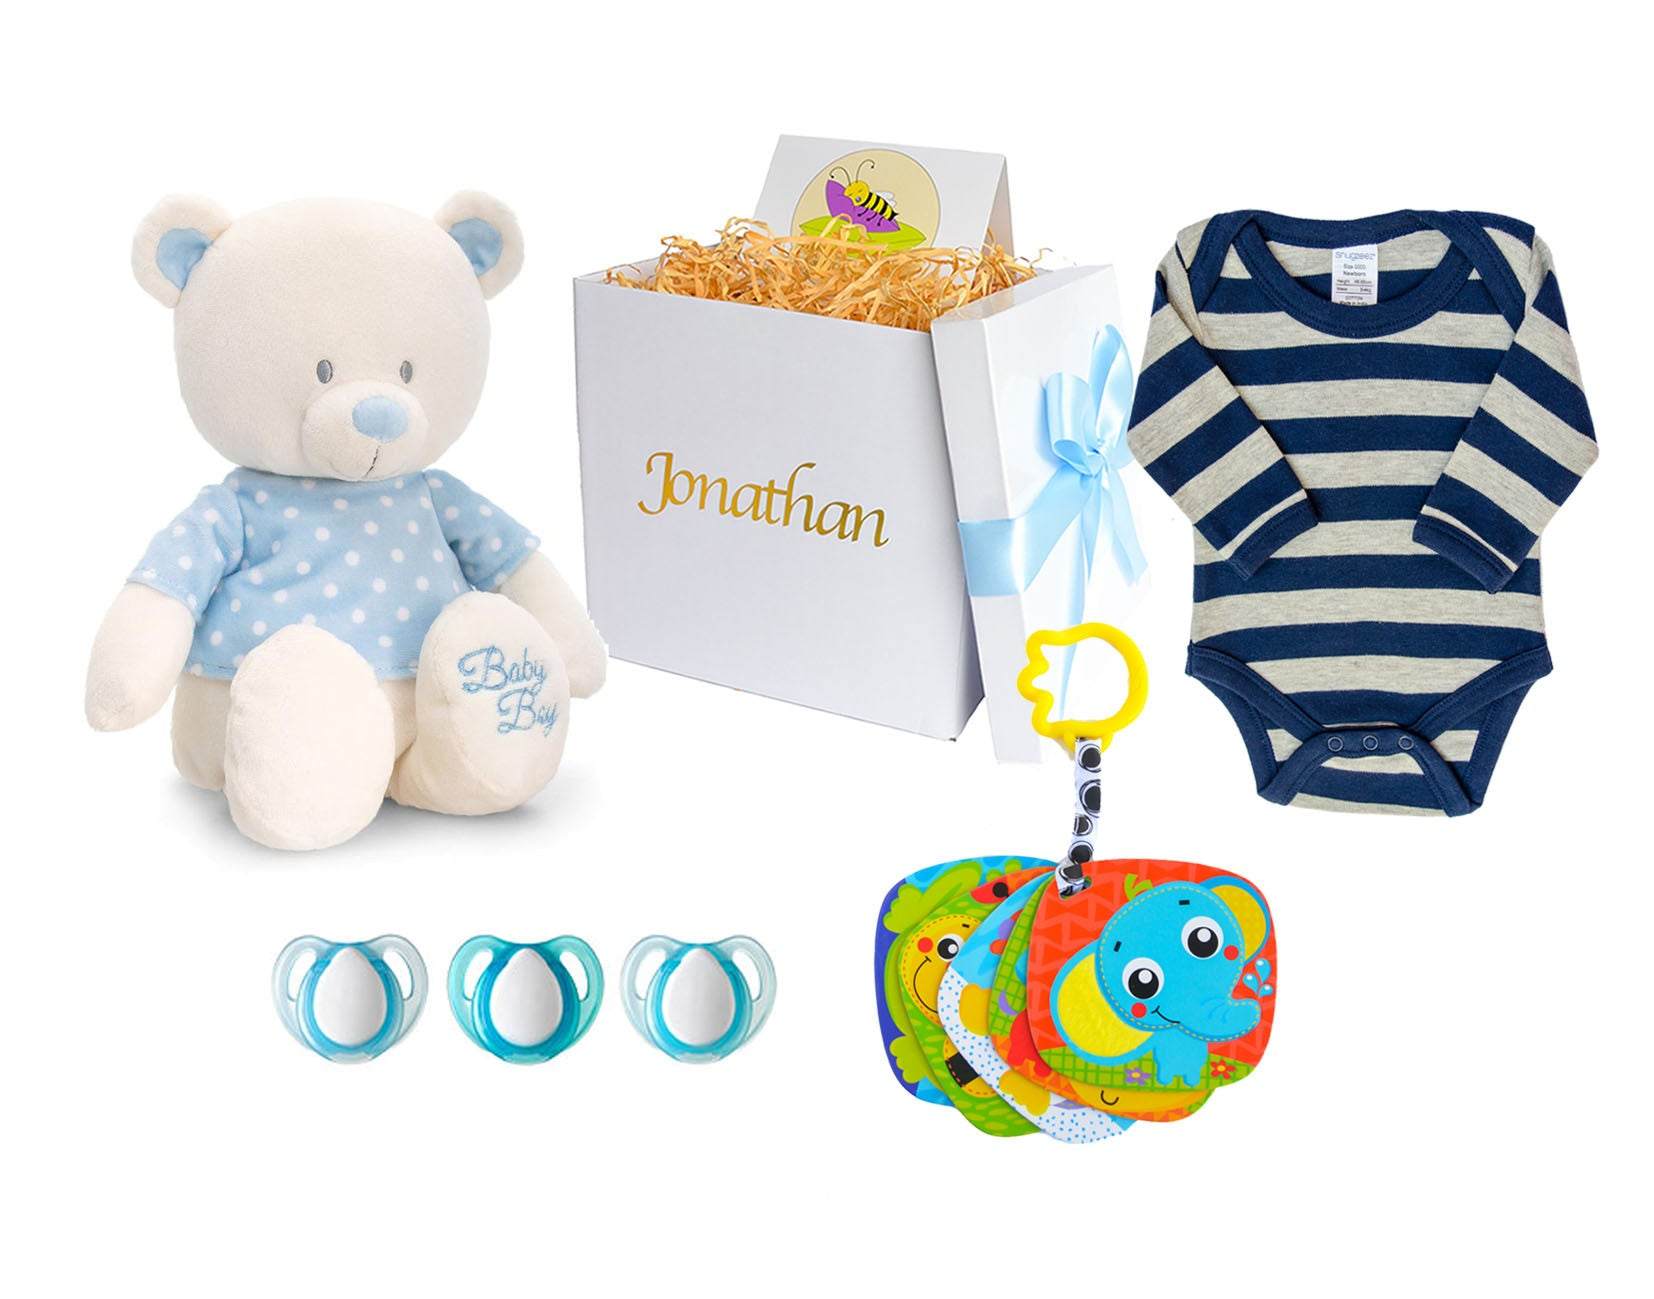 74e6d752828cf Favourites - Baby Hampers - Baby Boy Gifts - The Little Baby Shop